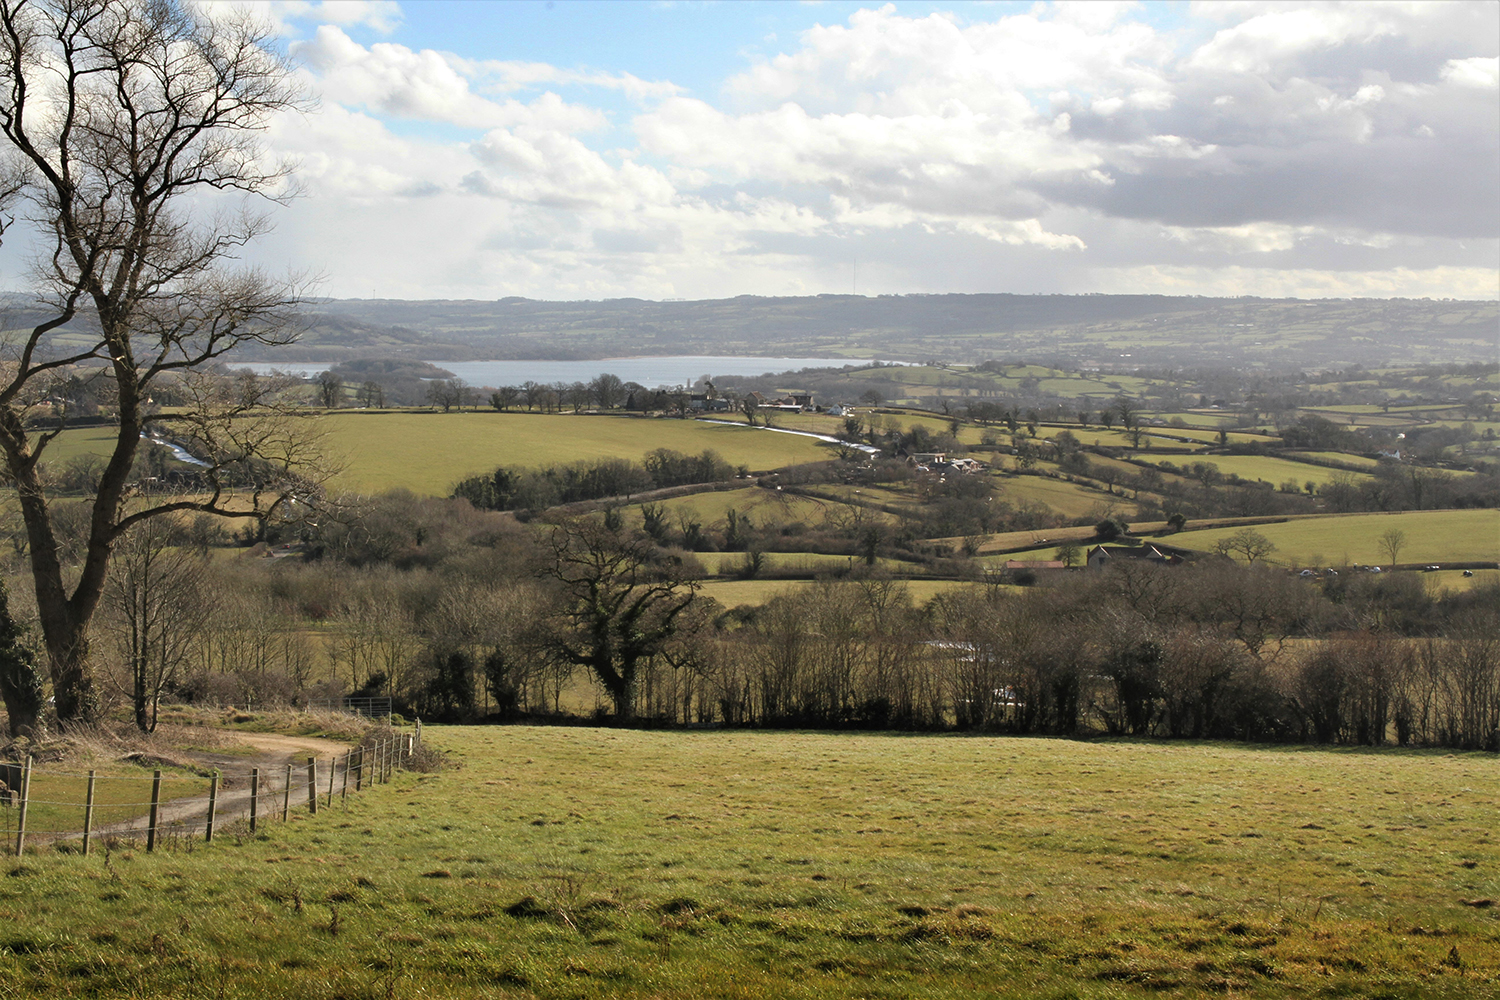 Image of Chew Valley Lake near Bristol